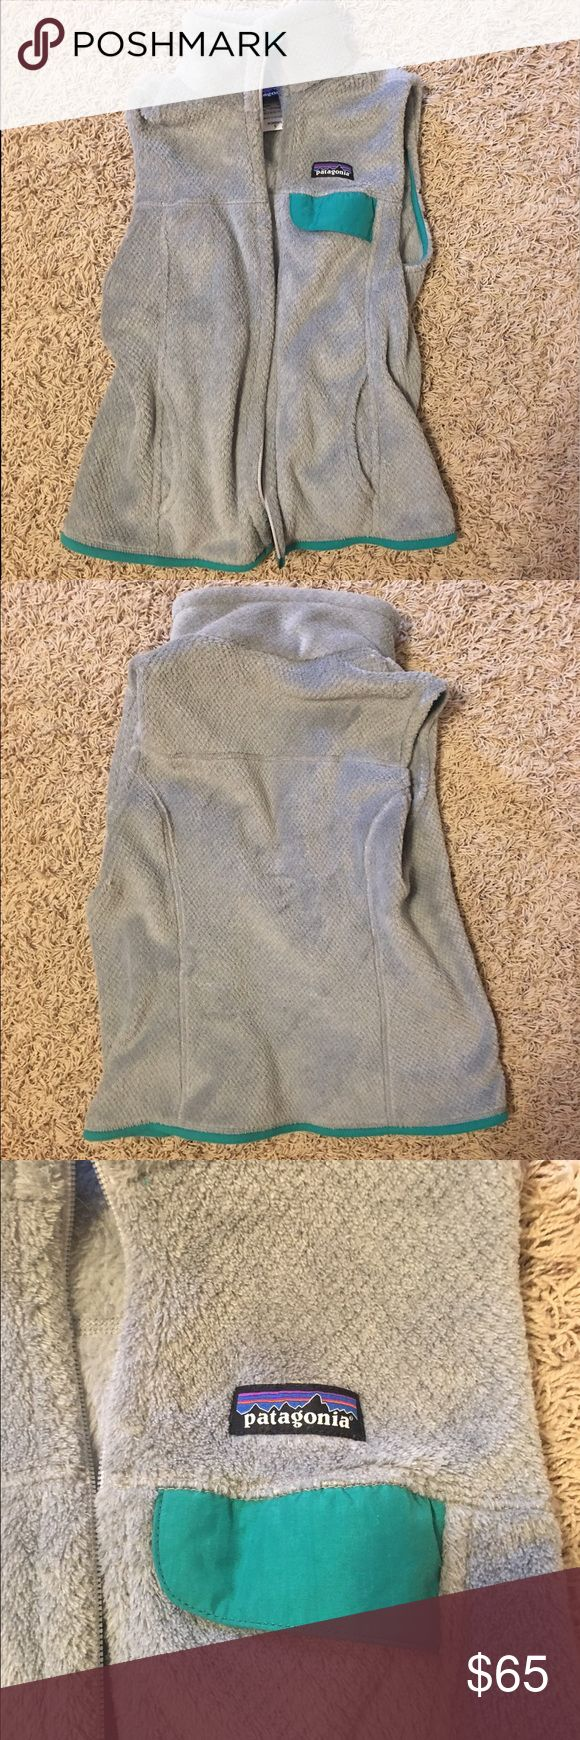 Women's Patagonia Fleece Vest Grey fleece vest with green outlining. Only worn it a couple times. Perfect condition. Patagonia Jackets & Coats Vests